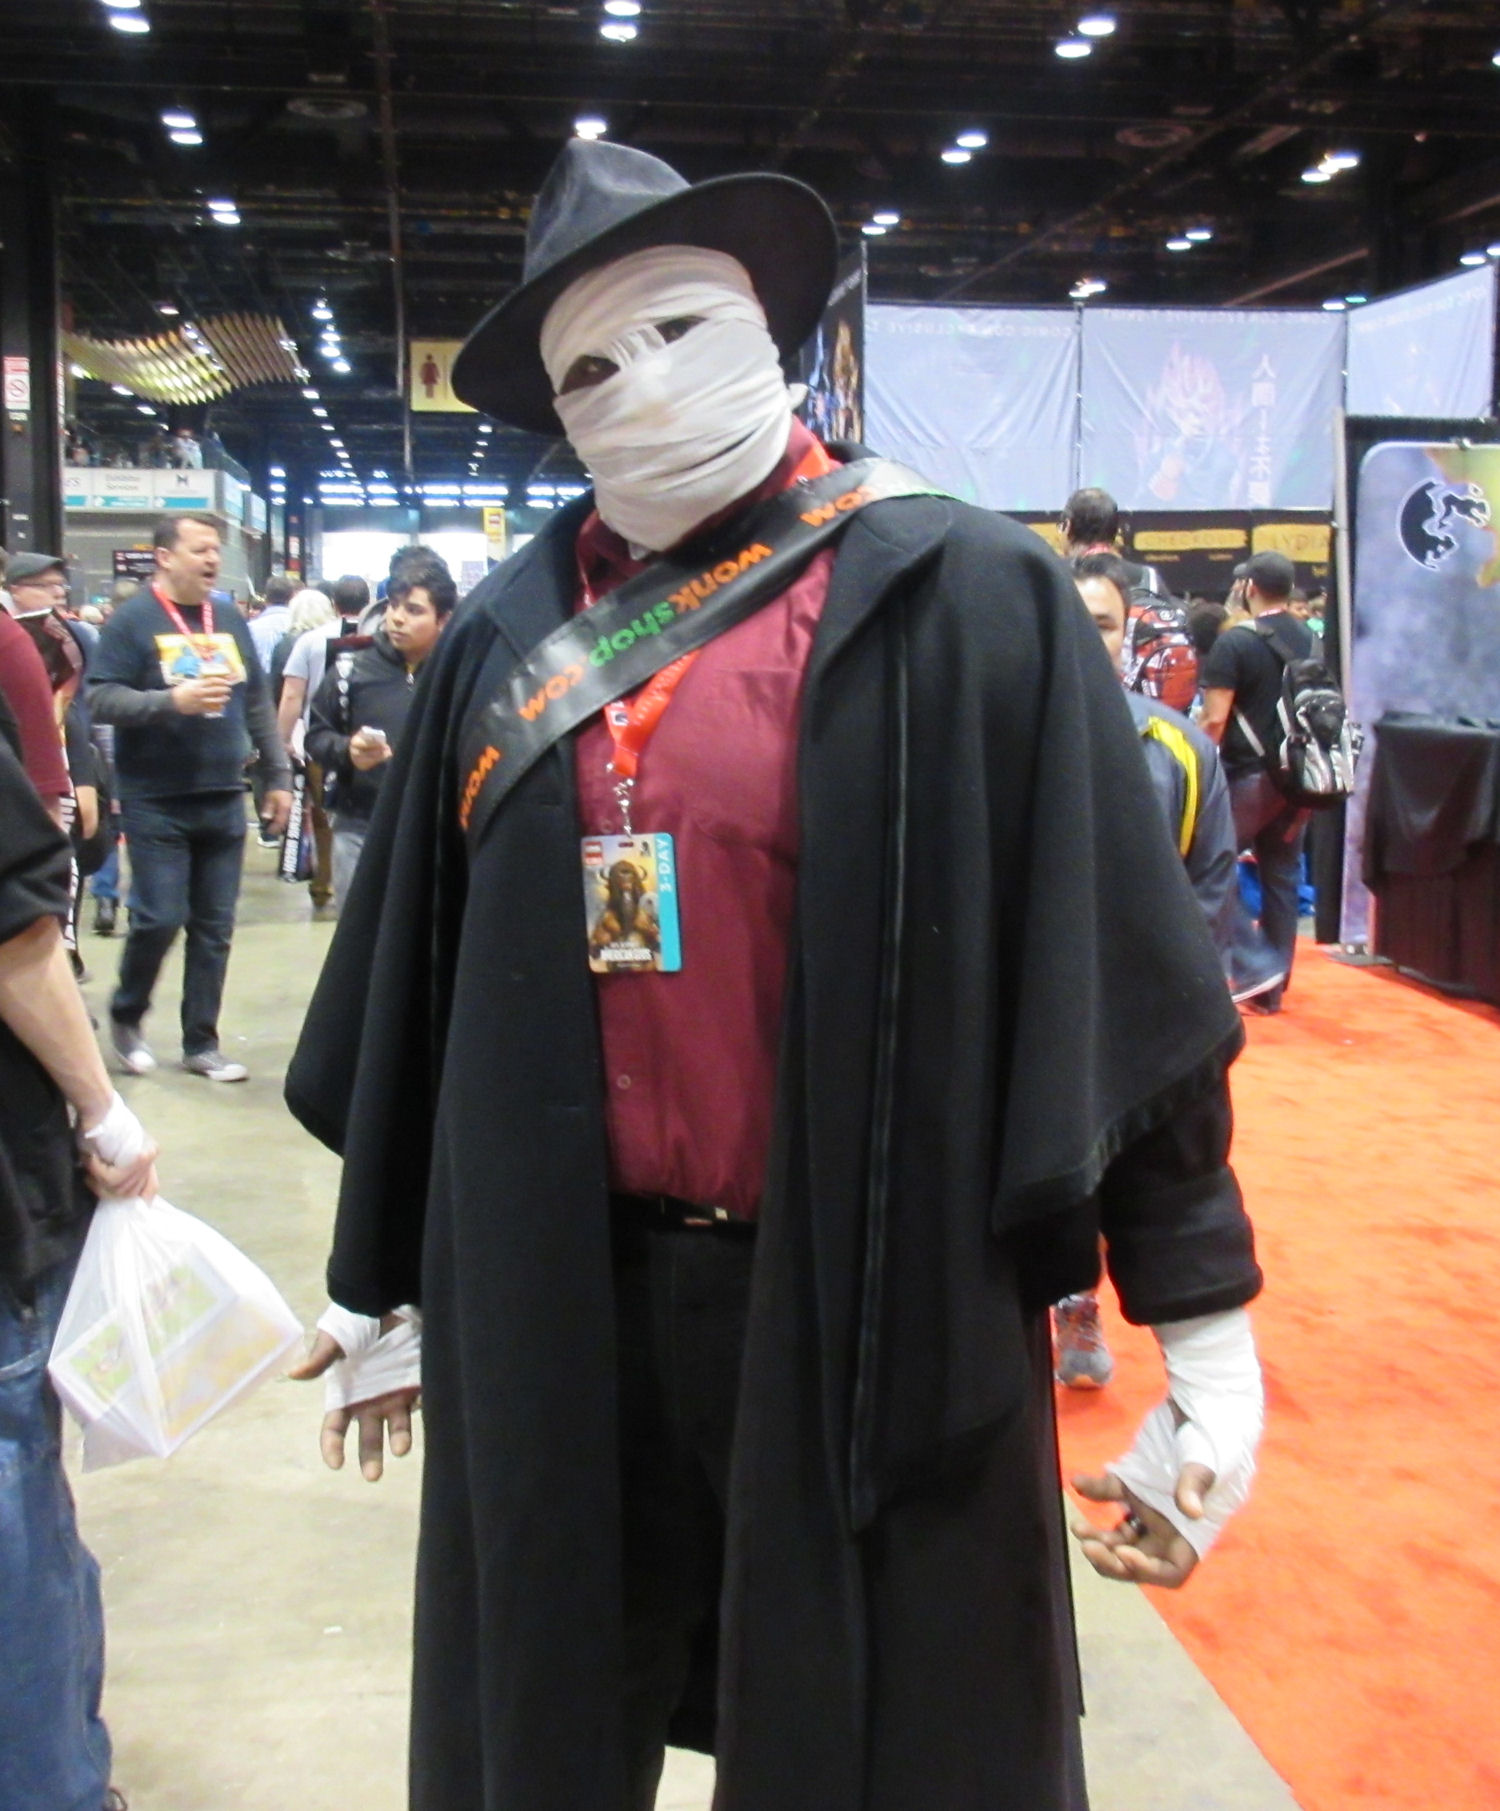 C2E2 2017 Photos, Part 2 Of 4: More Cosplay! « Midlife